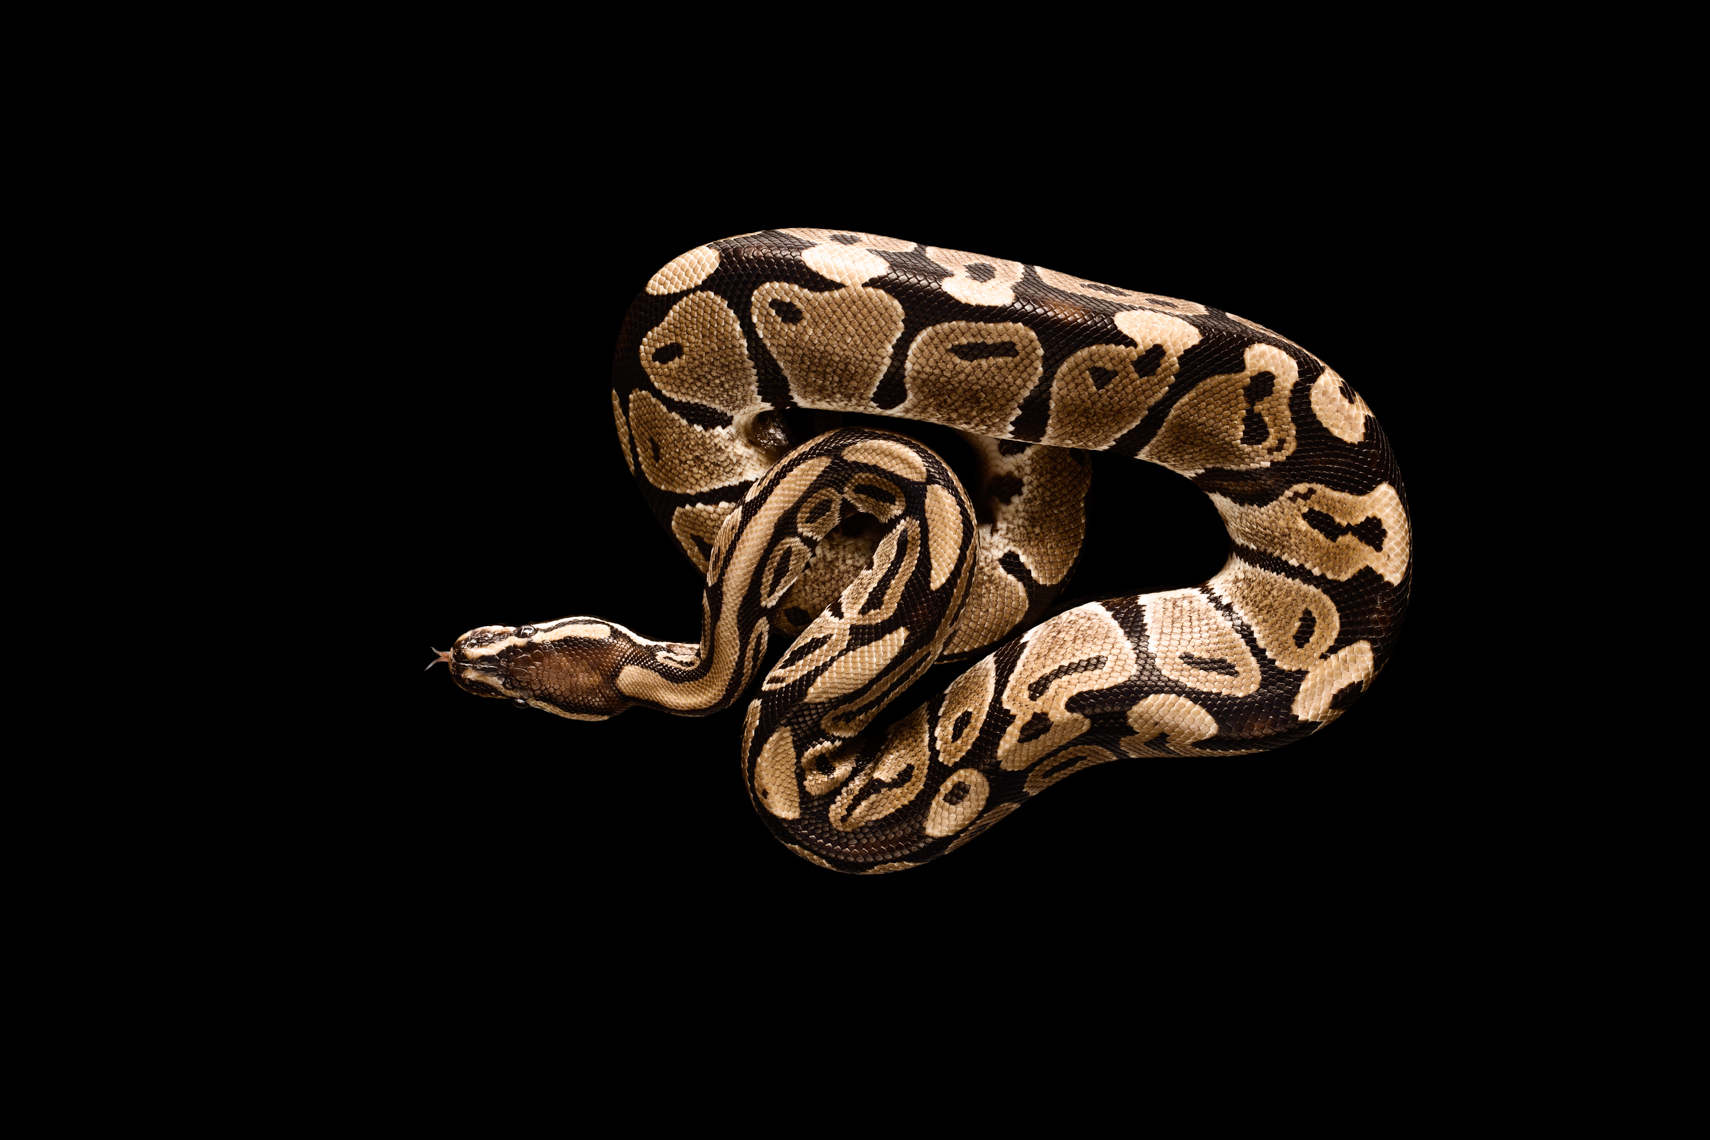 Ball Python snake in photography studio